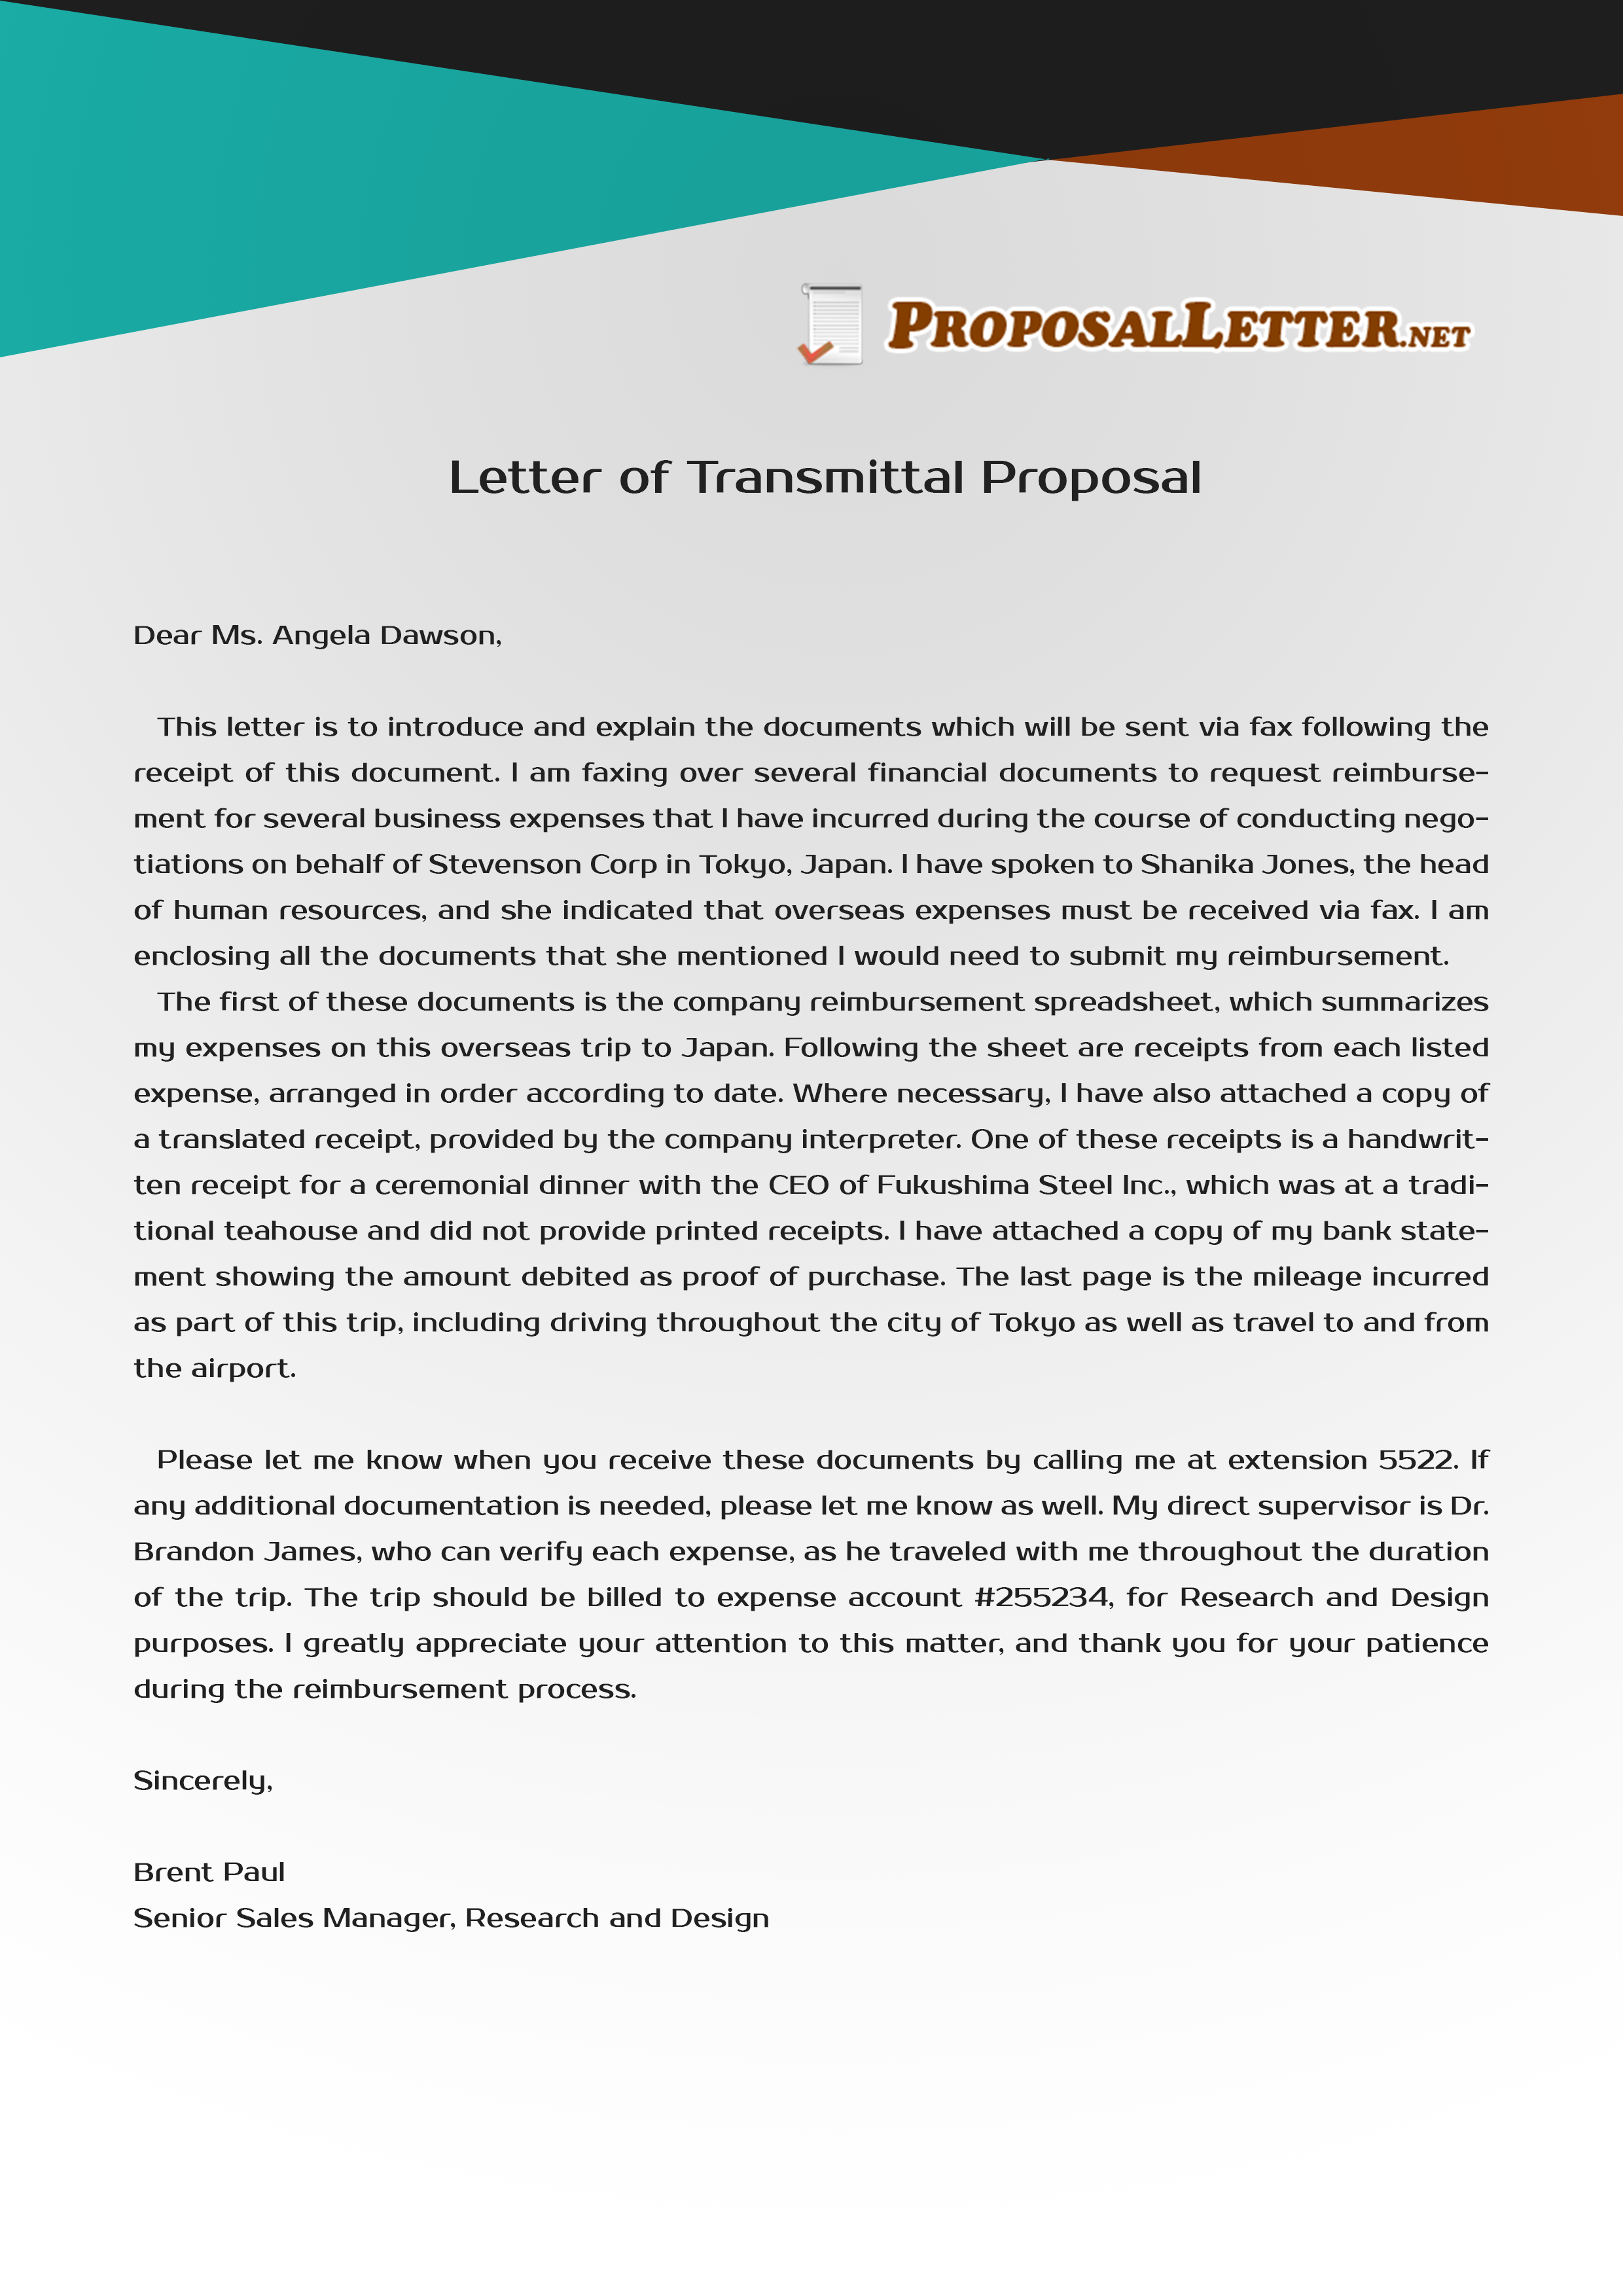 Get yout letter of transmittal proposal to be impeccable by – Sample of a Transmittal Letter